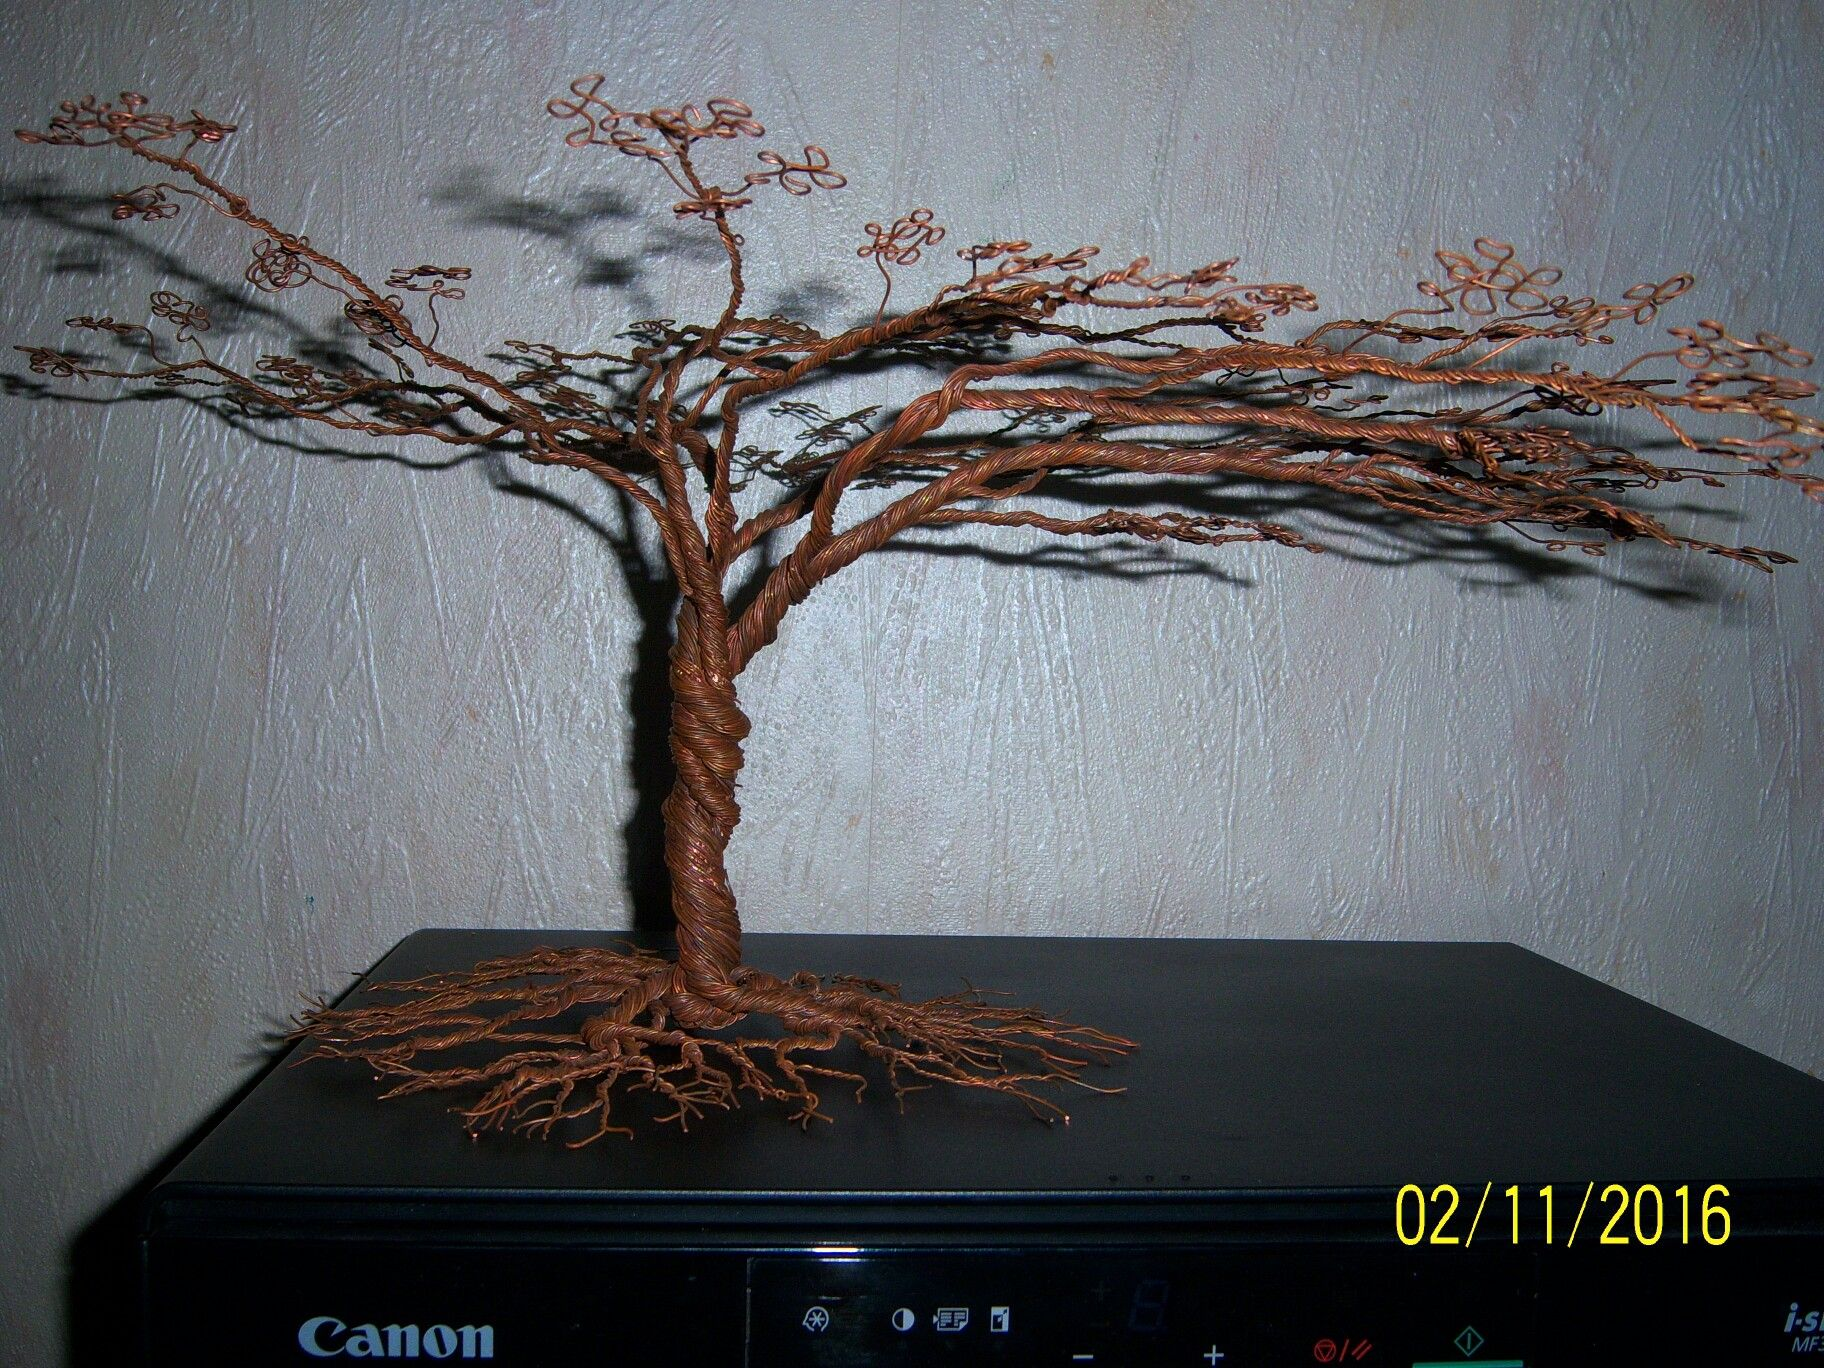 Pin by Frantisek Maderyc on Stromy   Pinterest   Wire trees